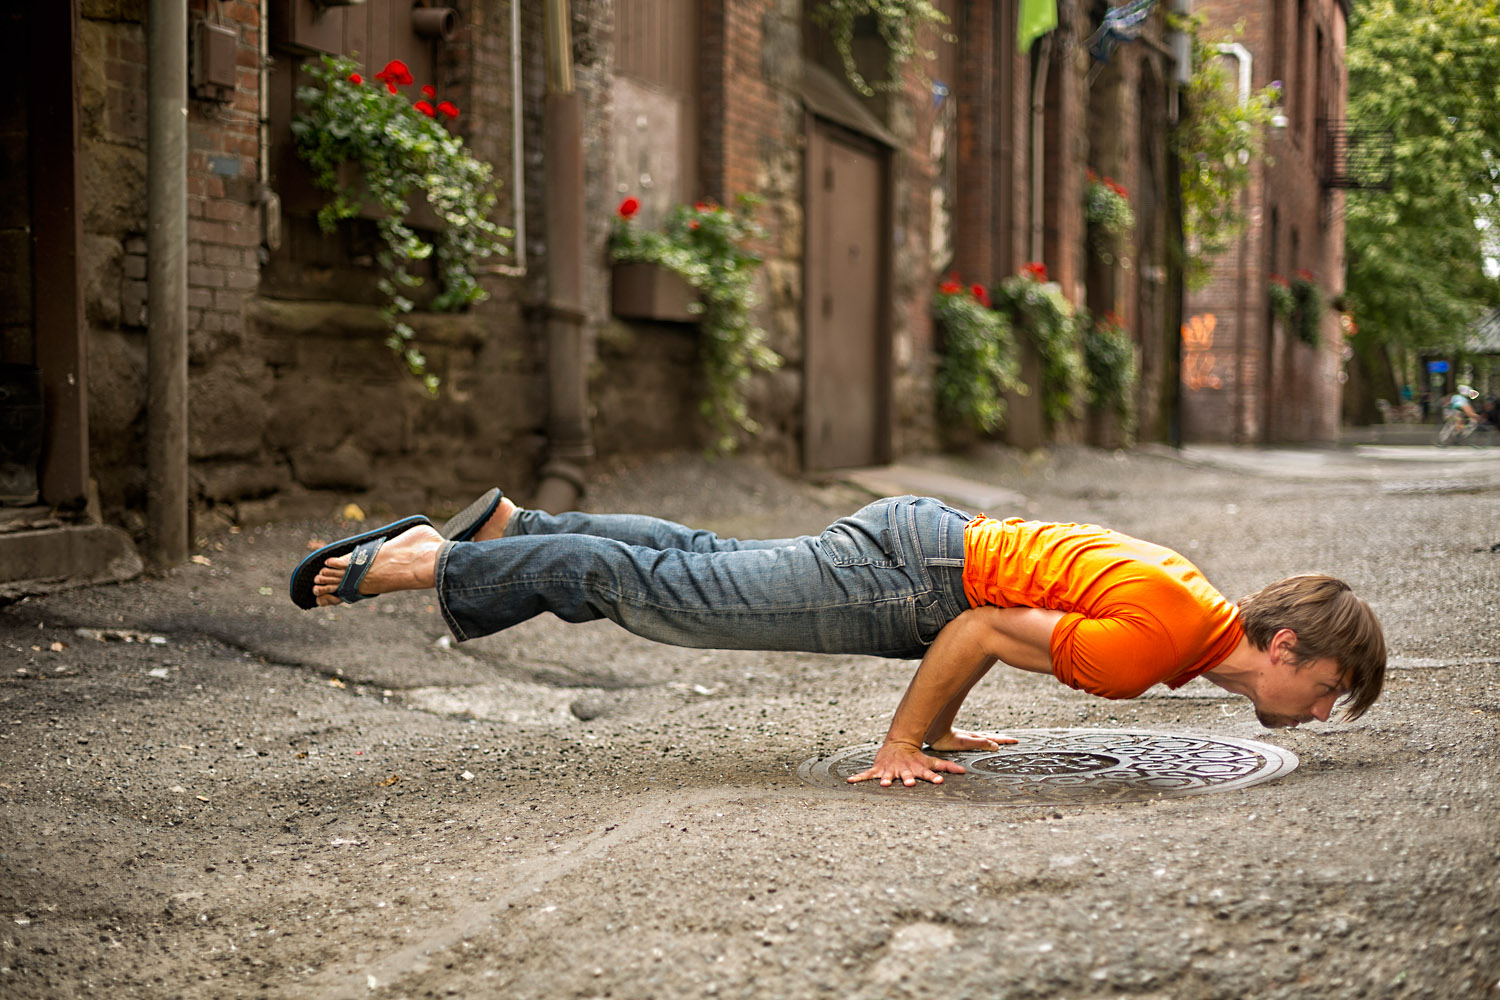 Lifestyle: A man practices urban yoga in Pioneer Square, Seattle, Washington